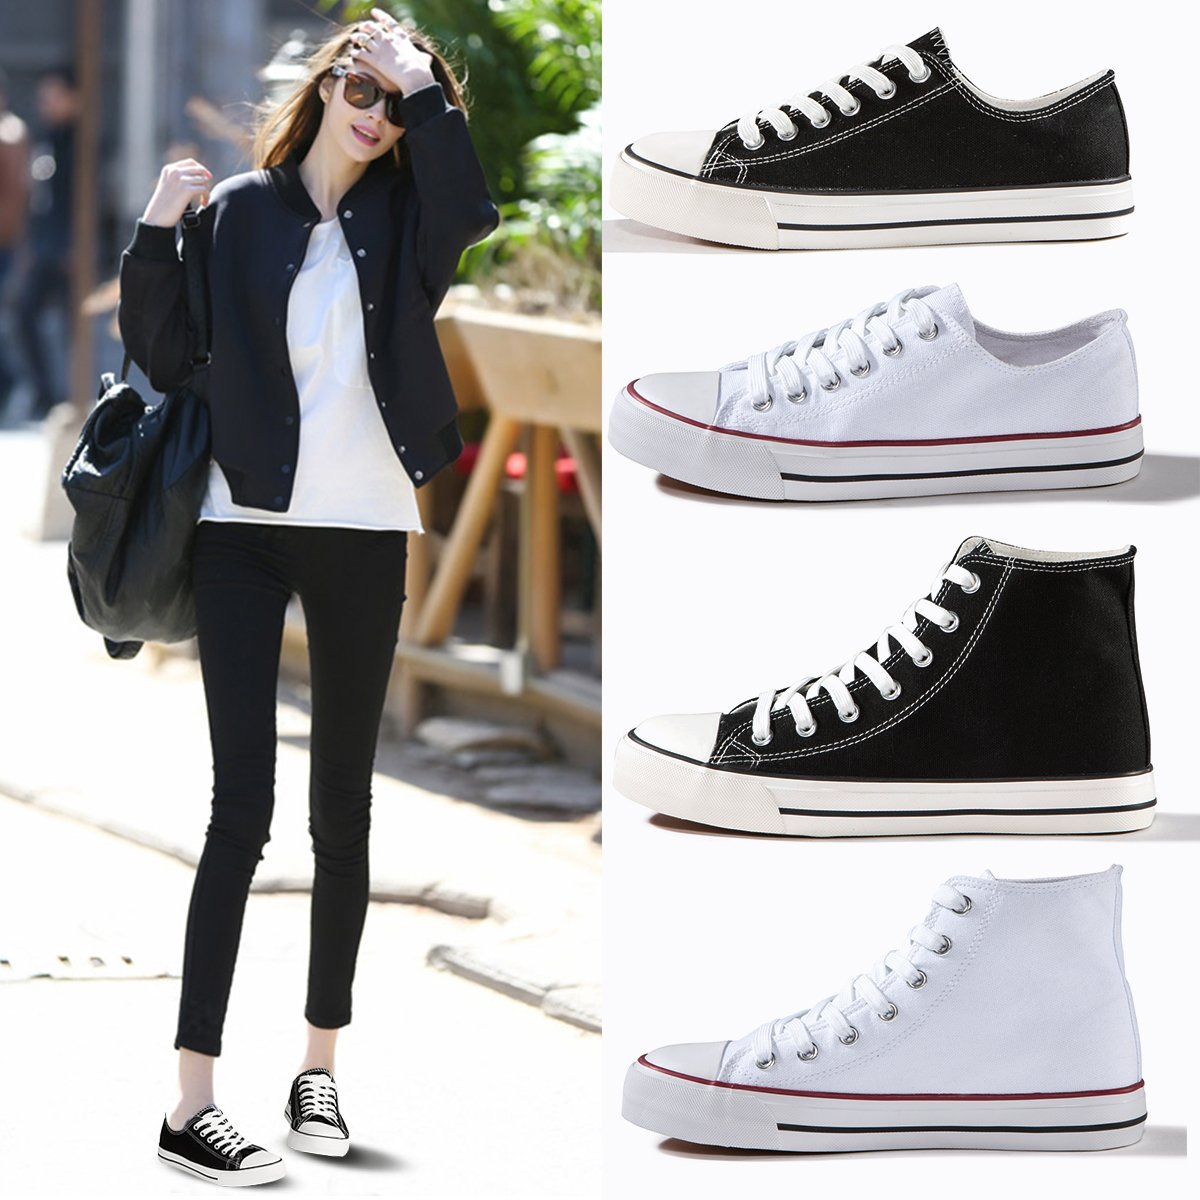 ZGR Canvas Sneaker Low Cut Season Lace Ups Shoes Casual Trainers for Women and Teenager Black US9 by ZGR (Image #7)